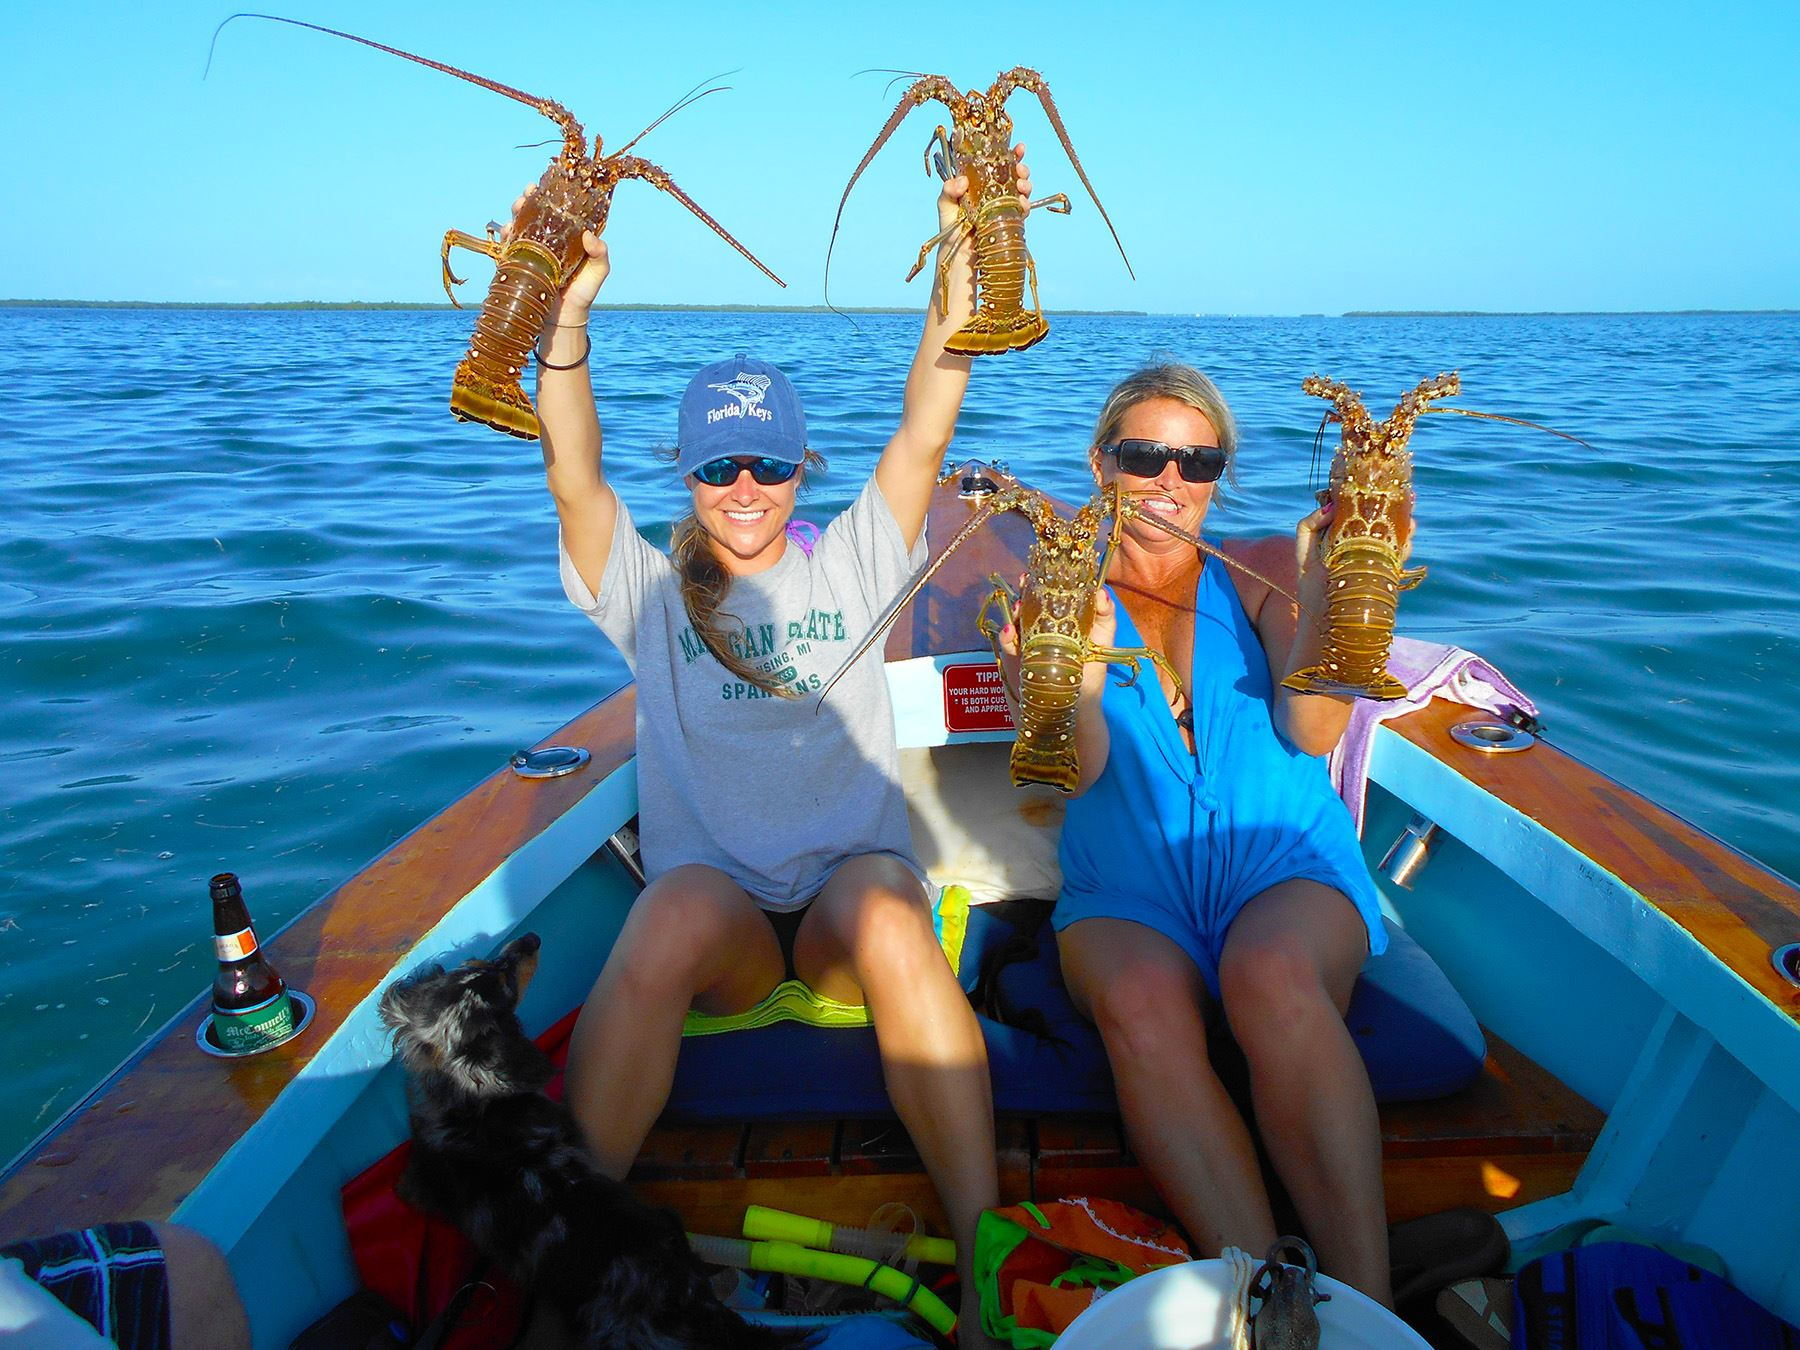 Planning a trip to the keys - The Hull Truth - Boating and ...